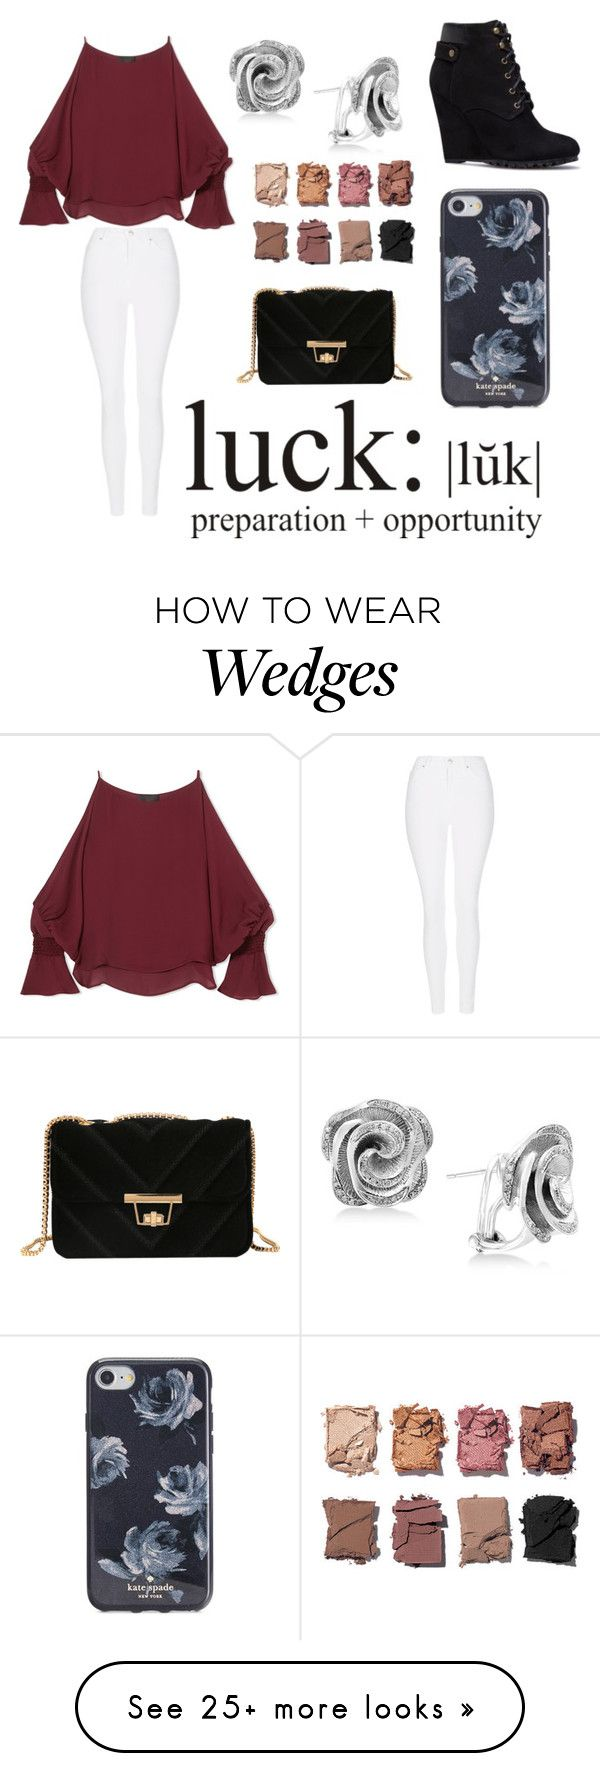 """It's Been A While..."" by judith-wanasida on Polyvore featuring Topshop, Nili Lotan, Effy Jewelry, WALL, Illamasqua and Kate Spade"